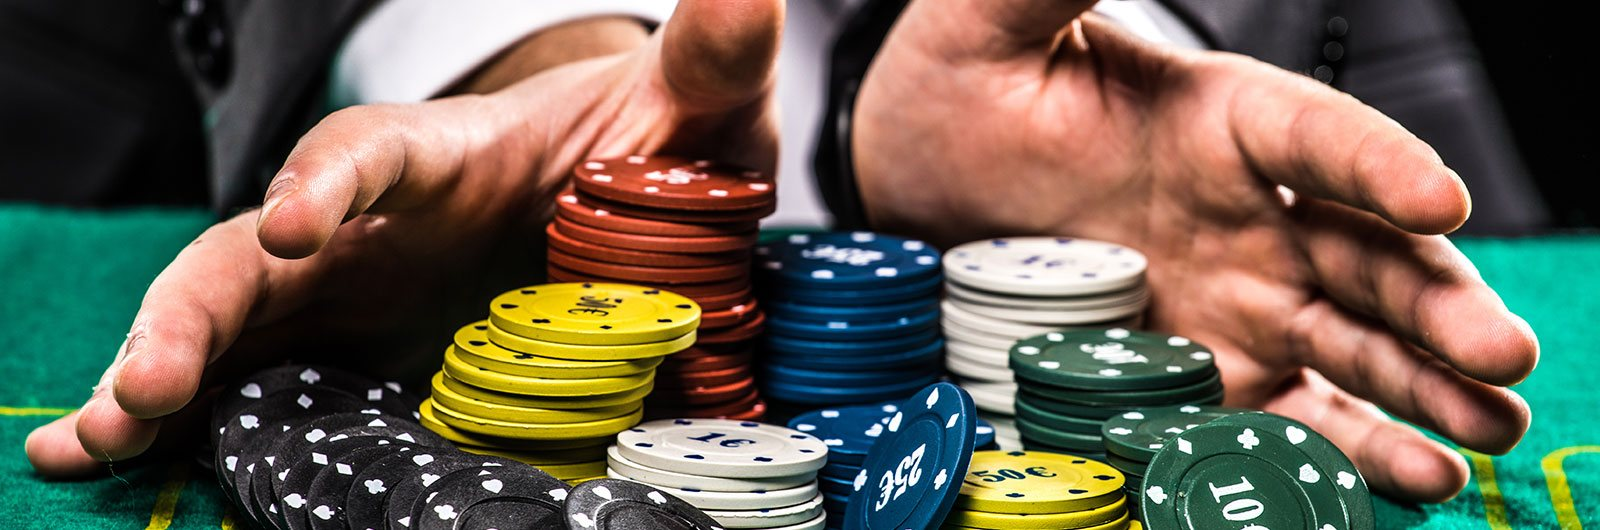 Top tricks to play your next poker online